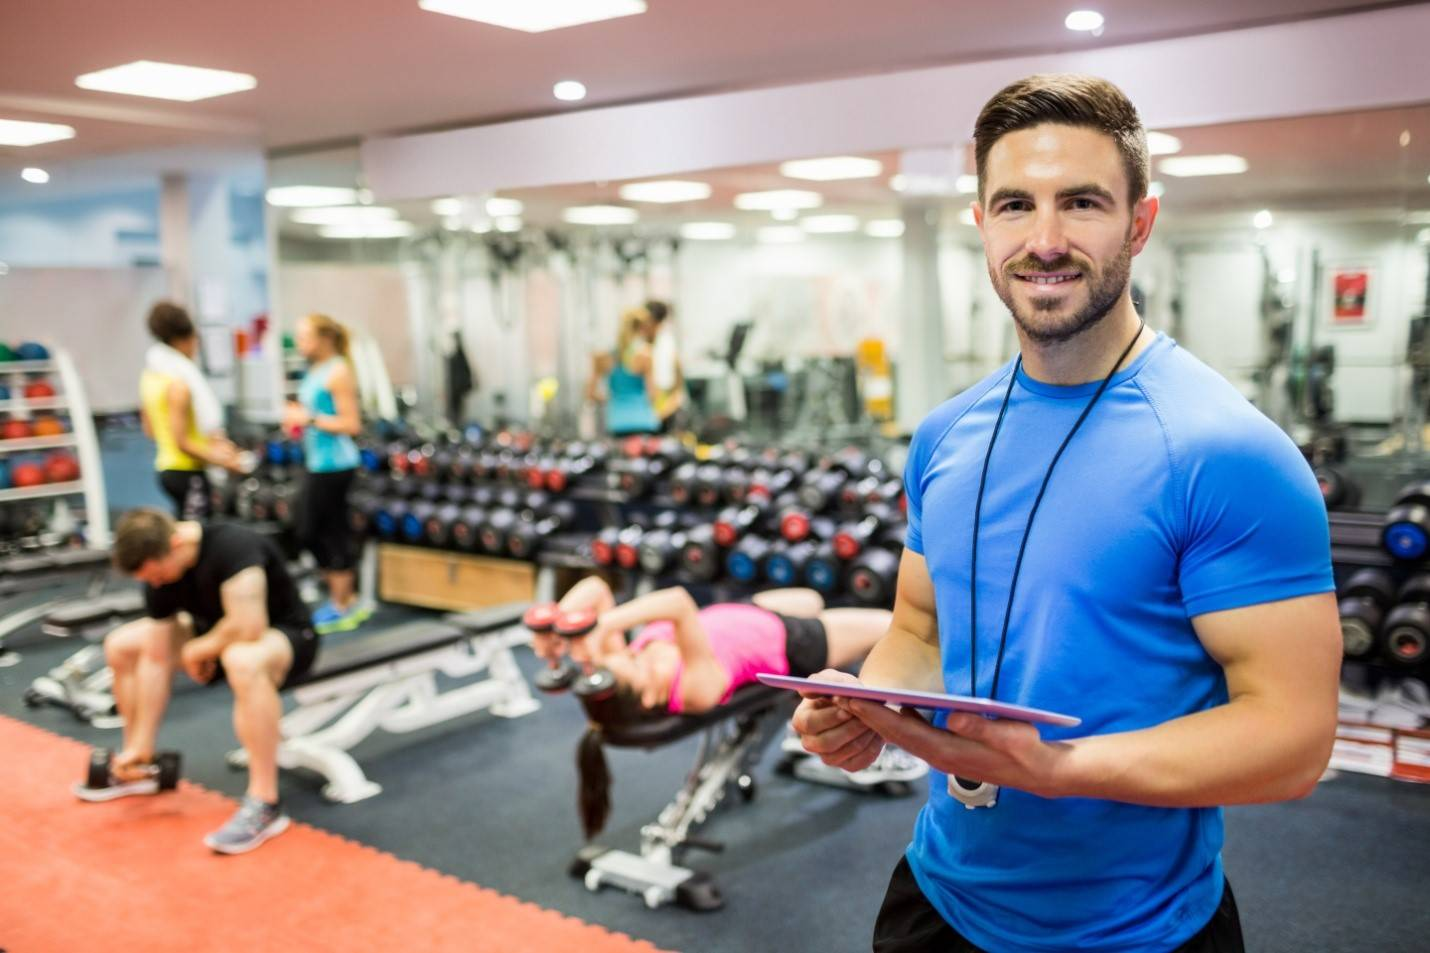 REASONS YOU SHOULD GET A PERSONAL TRAINER